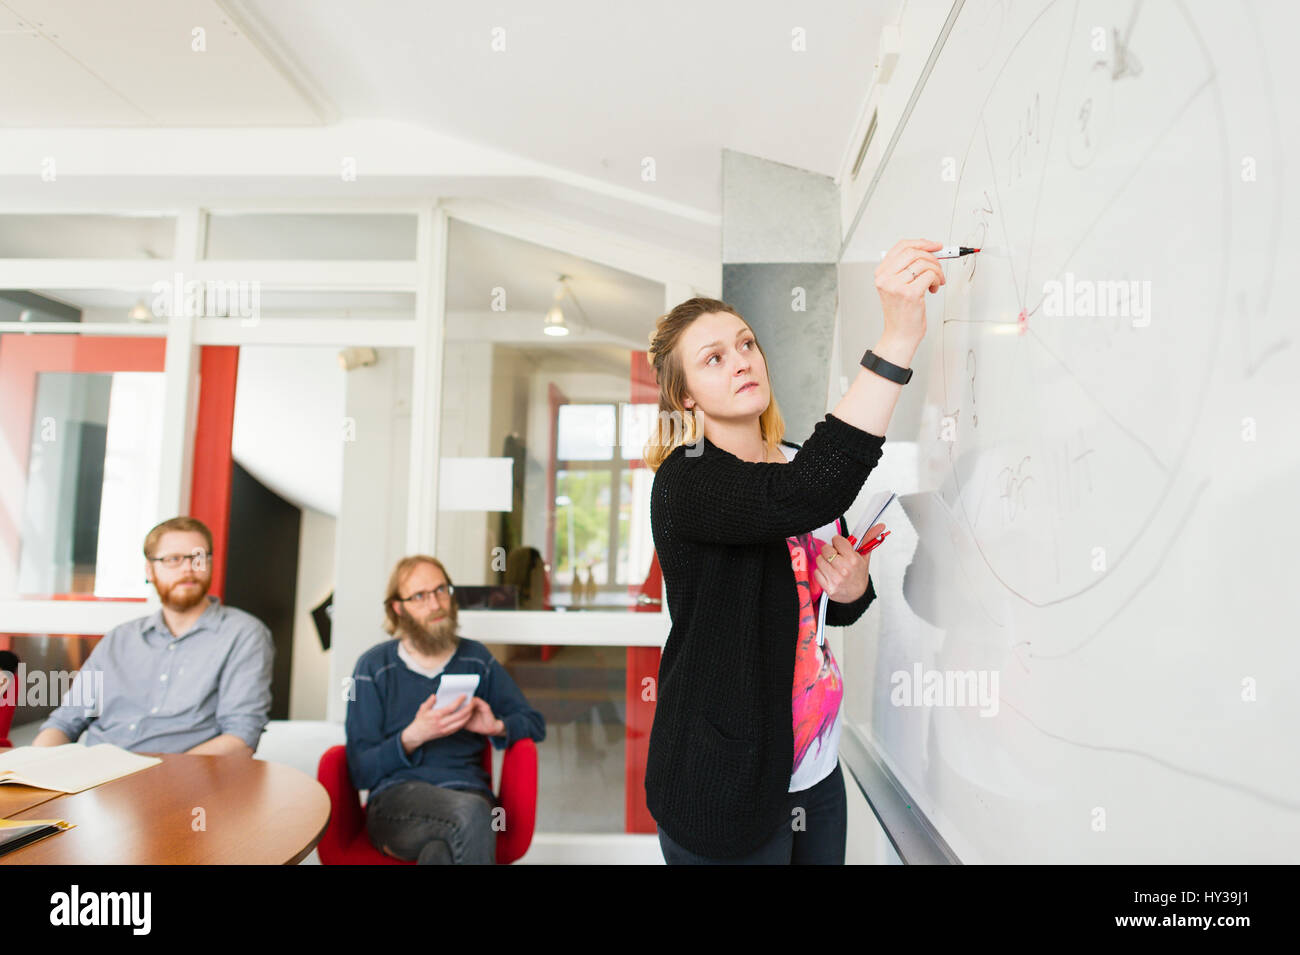 Sweden, Young woman drawing on white board during work meeting - Stock Image